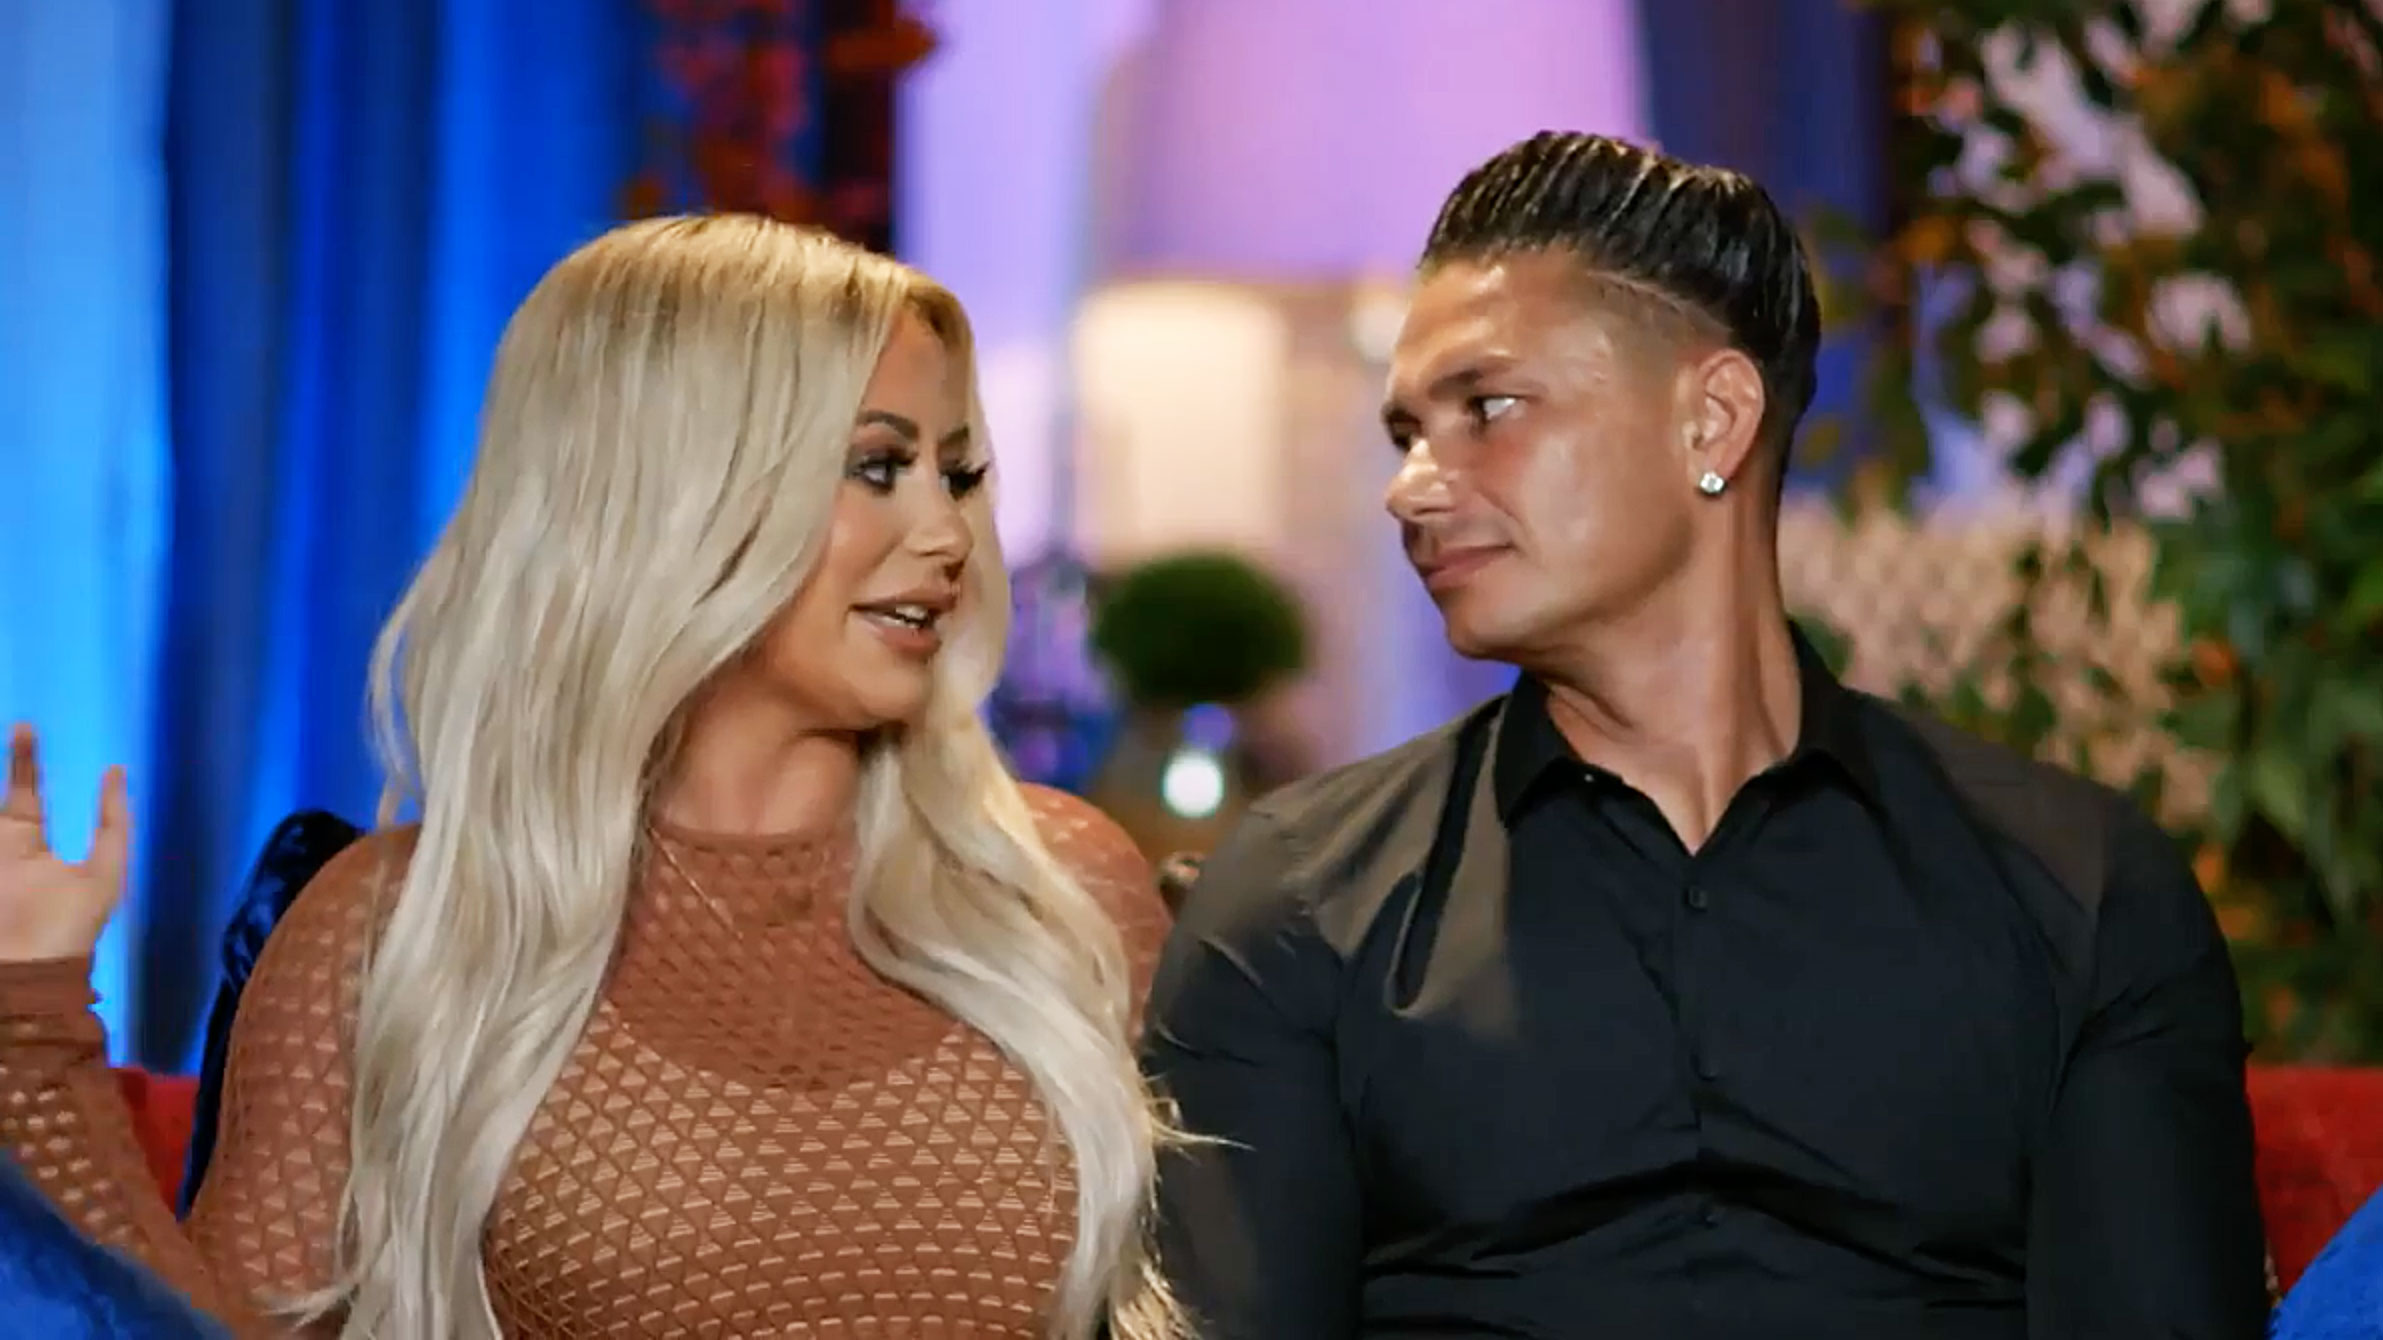 Pauly d who is he dating